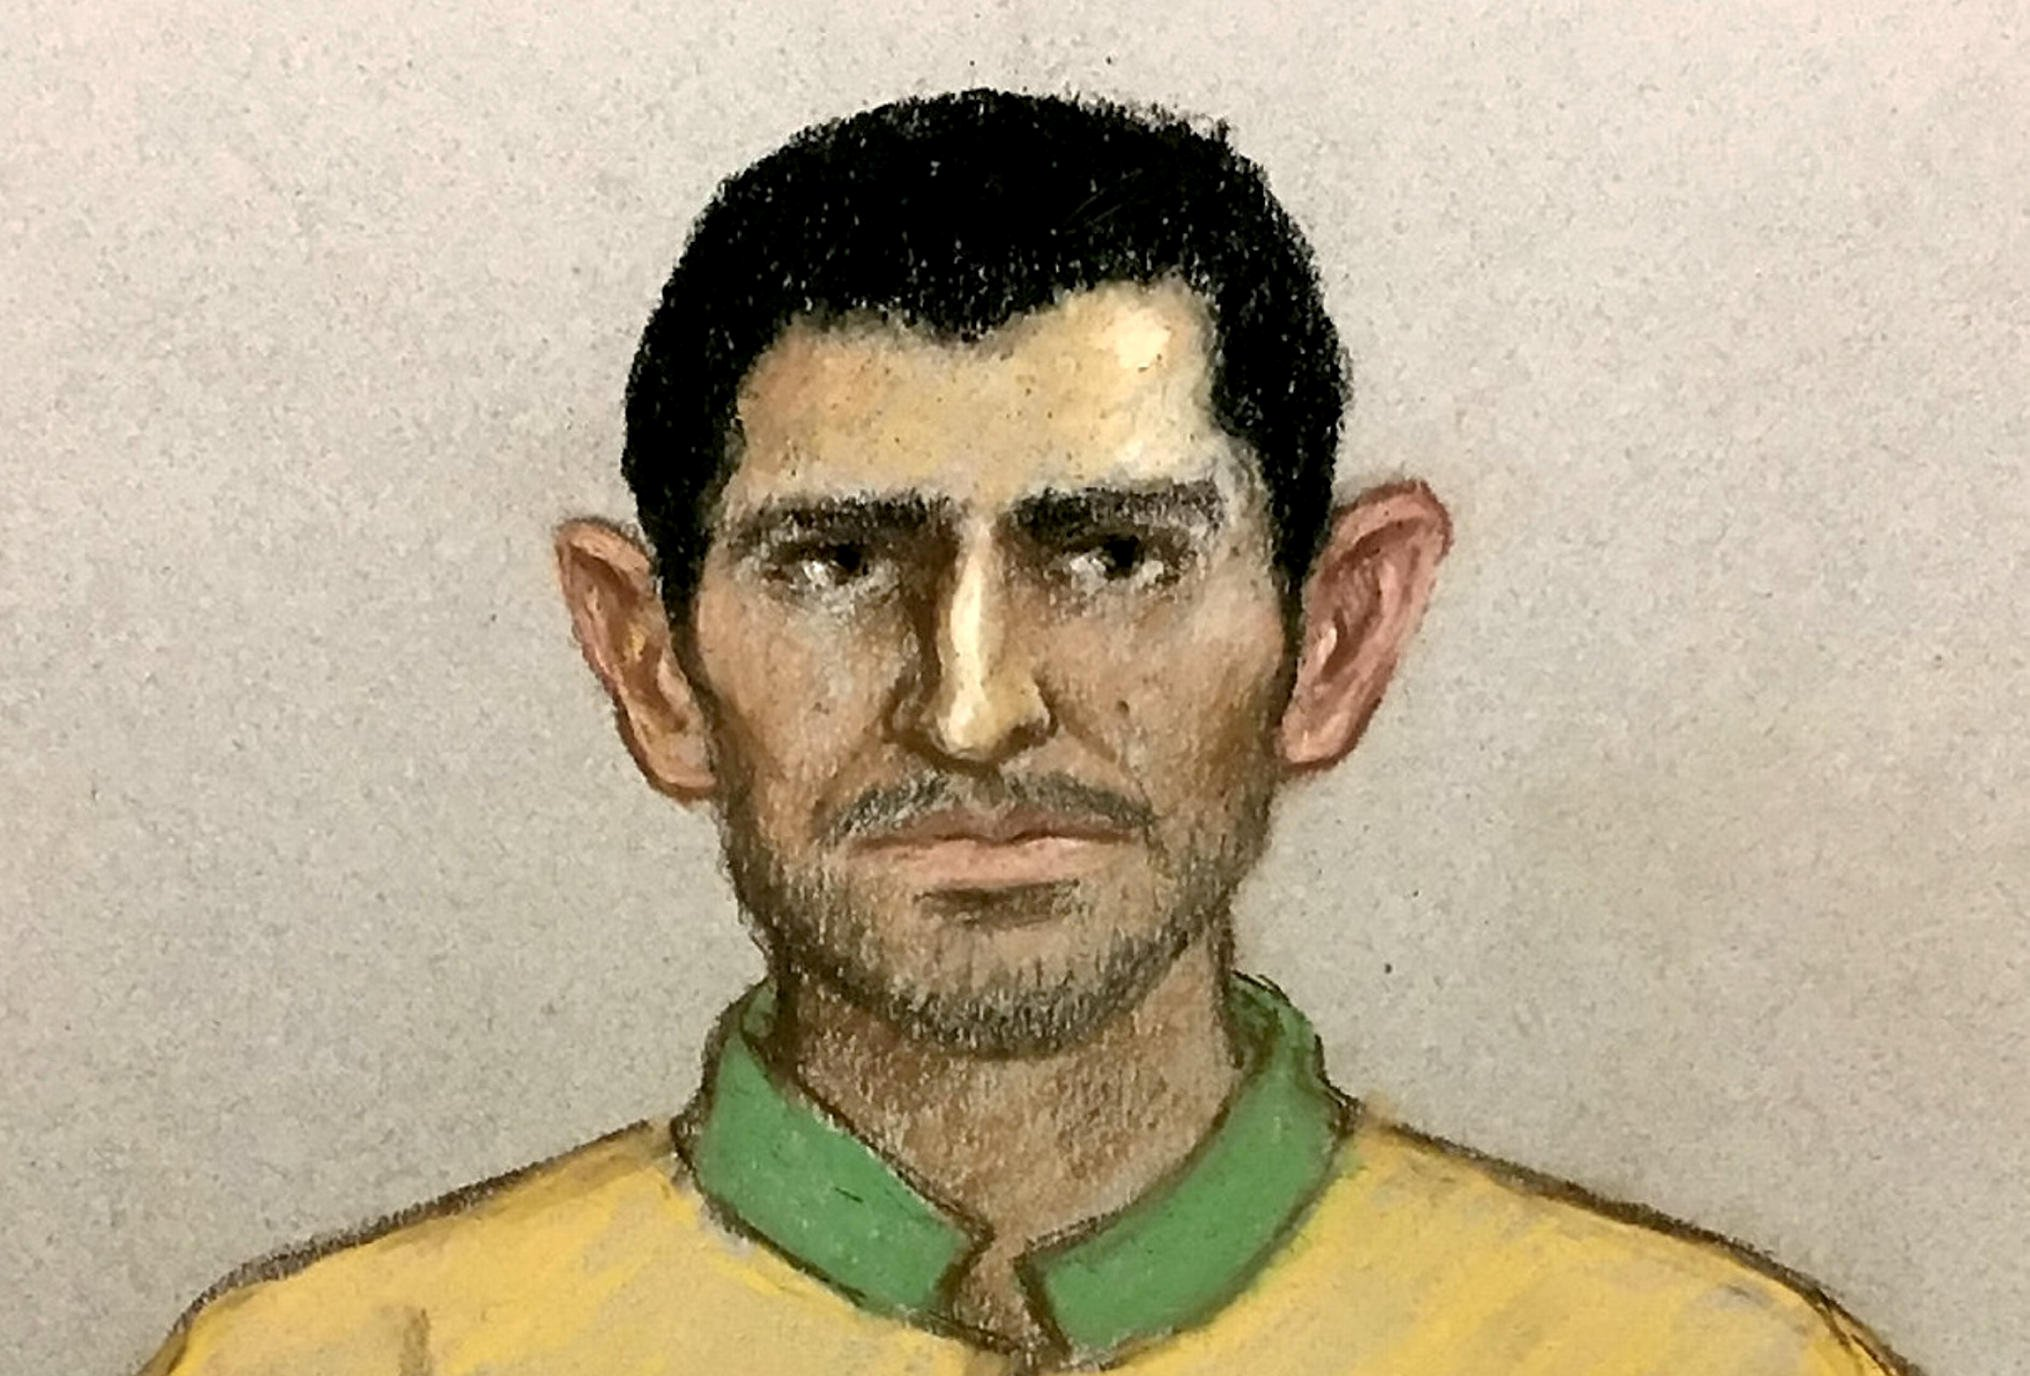 "Artists impression of Manuel Petrovic appearing at the Old Bailey, London, this morning. March 11, 2019. See NATIONAL story NNMURDER. A man accused of murdering a 17-year-old girl in a park has been remanded in custody ahead of a plea hearing. Jodie Chesney was walking with her friends and boyfriend on the evening of Friday, March 1, in Amy's Park in Harold Hill when she was attacked near a play area. The teenager, described by family as a ""proud geek"" and a ""great girl"", was pronounced dead at the scene. Manuel Petrovic, 20, was arrested in Leicester on Tuesday (March 5) and appeared at the Old Bailey this morning (Monday, March 11) charged with her murder."